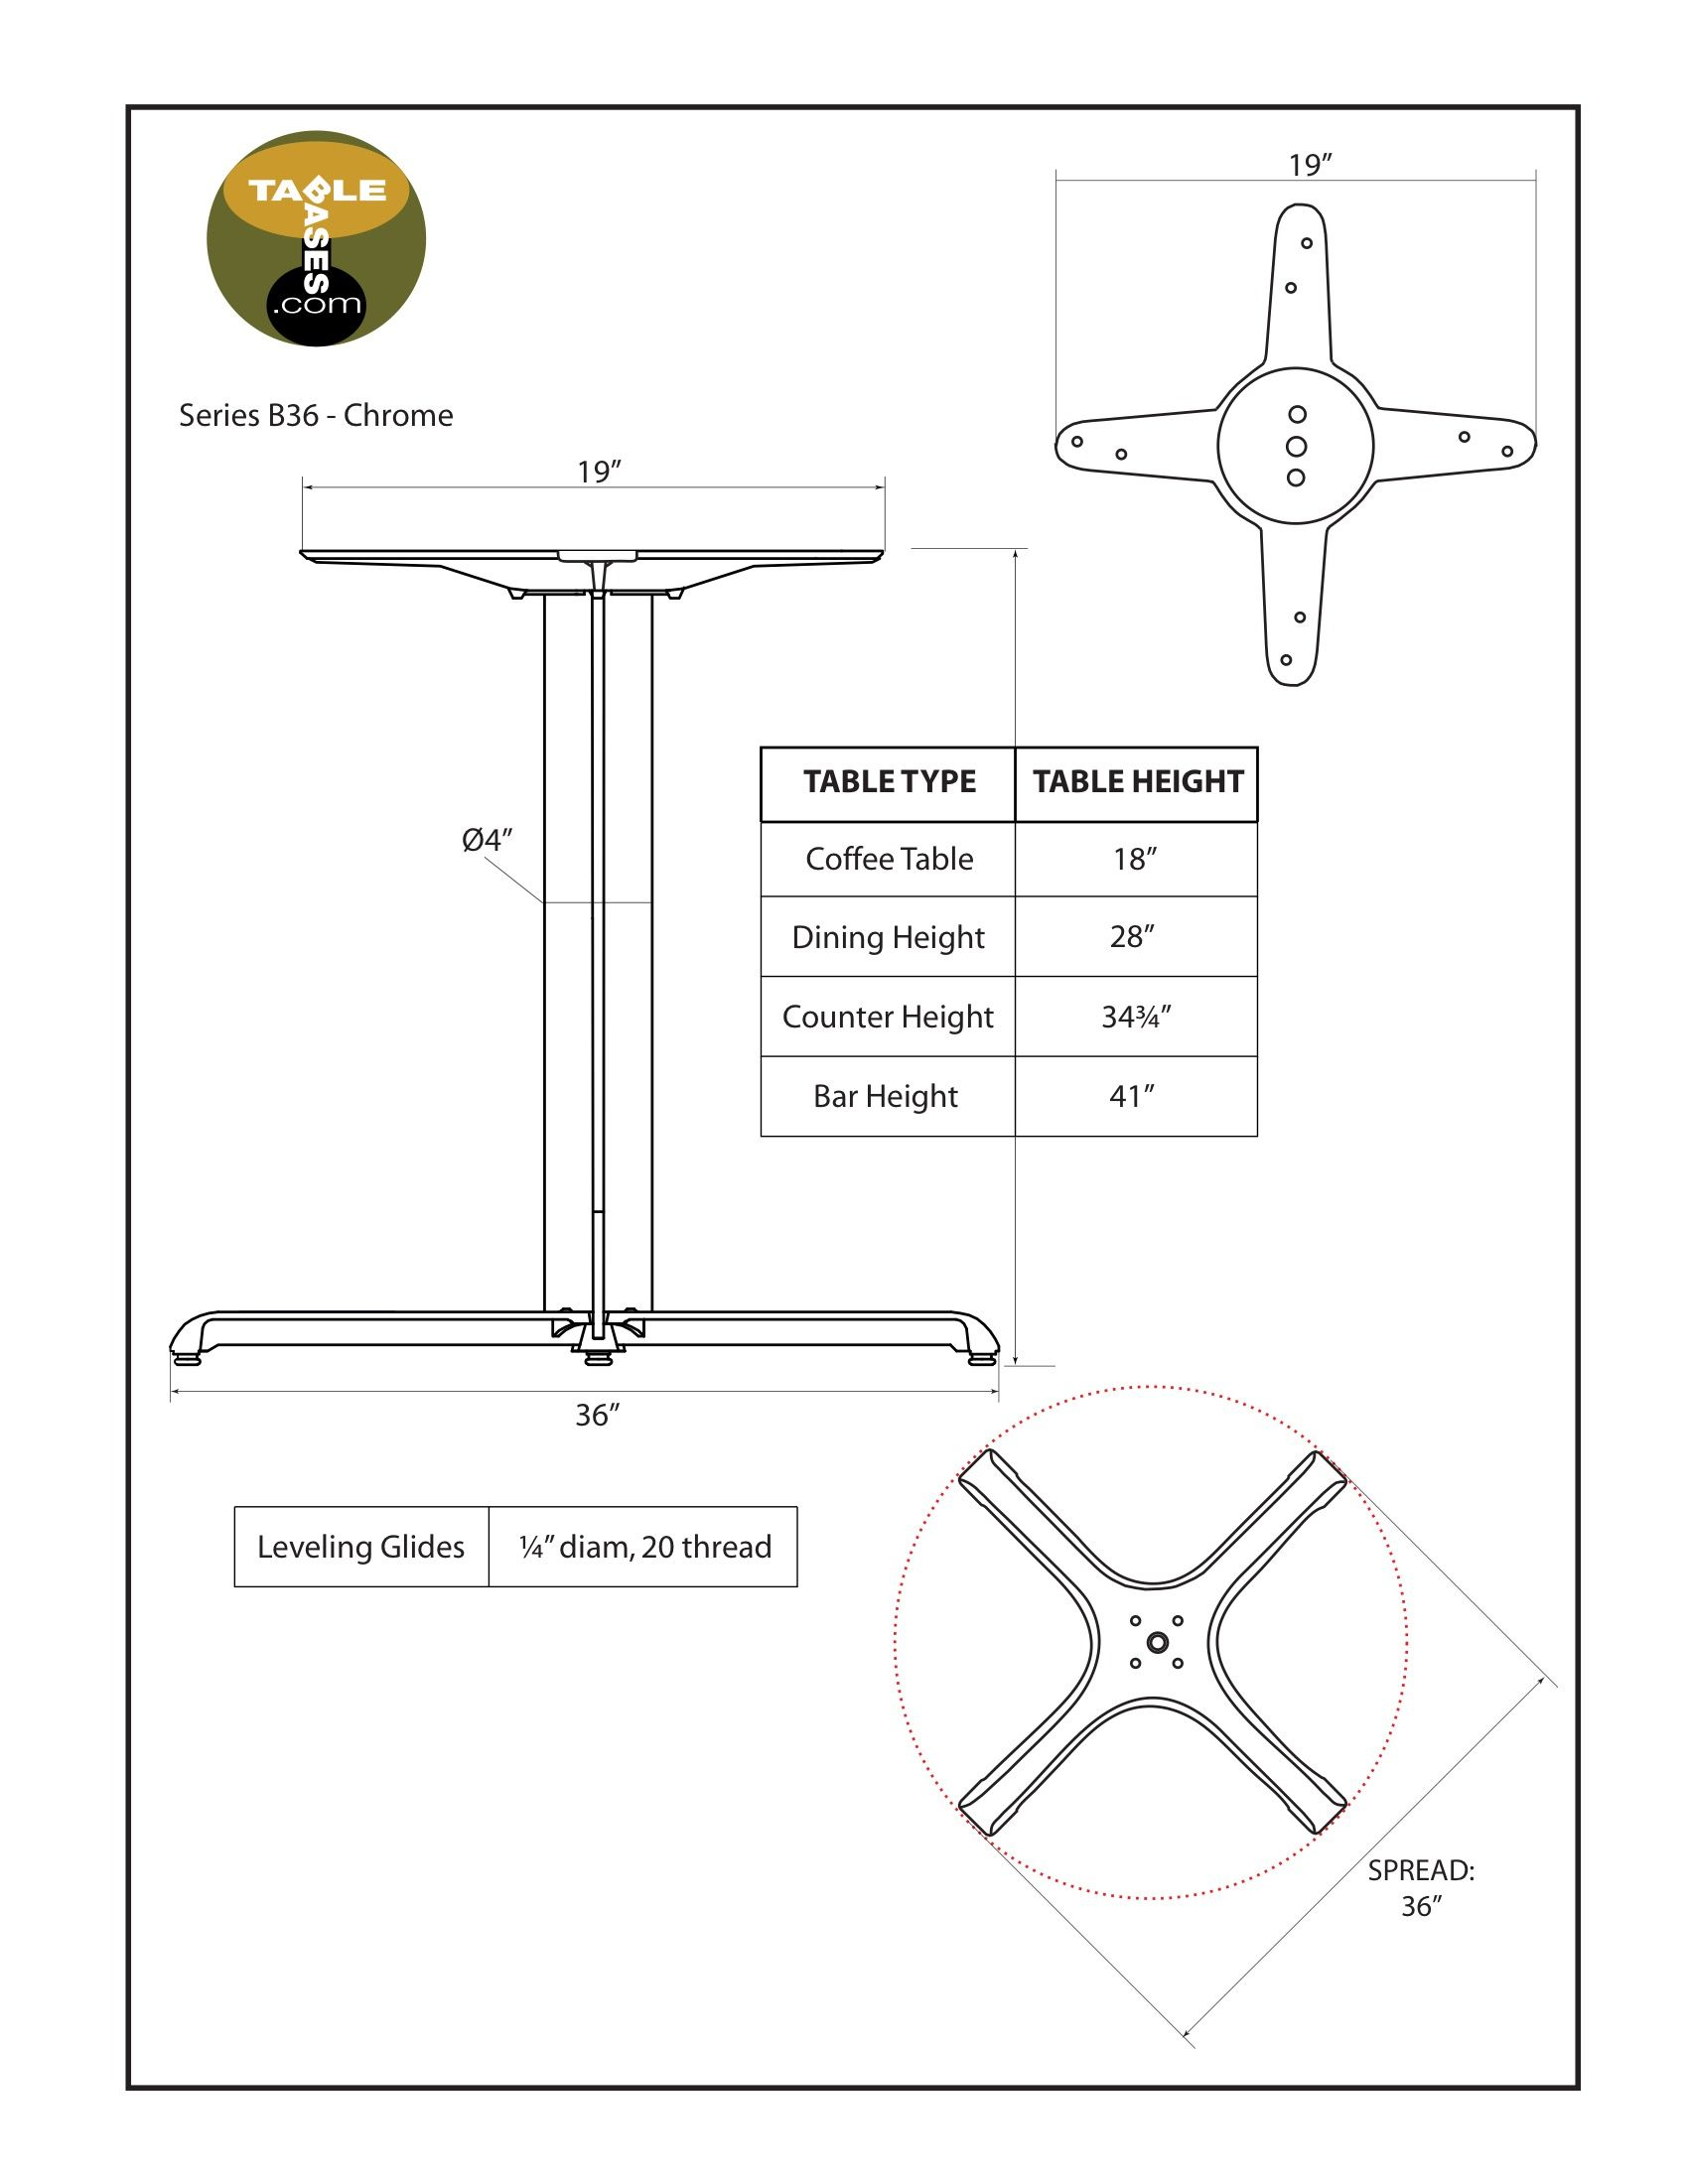 B36 Chrome Table Base - Specifications